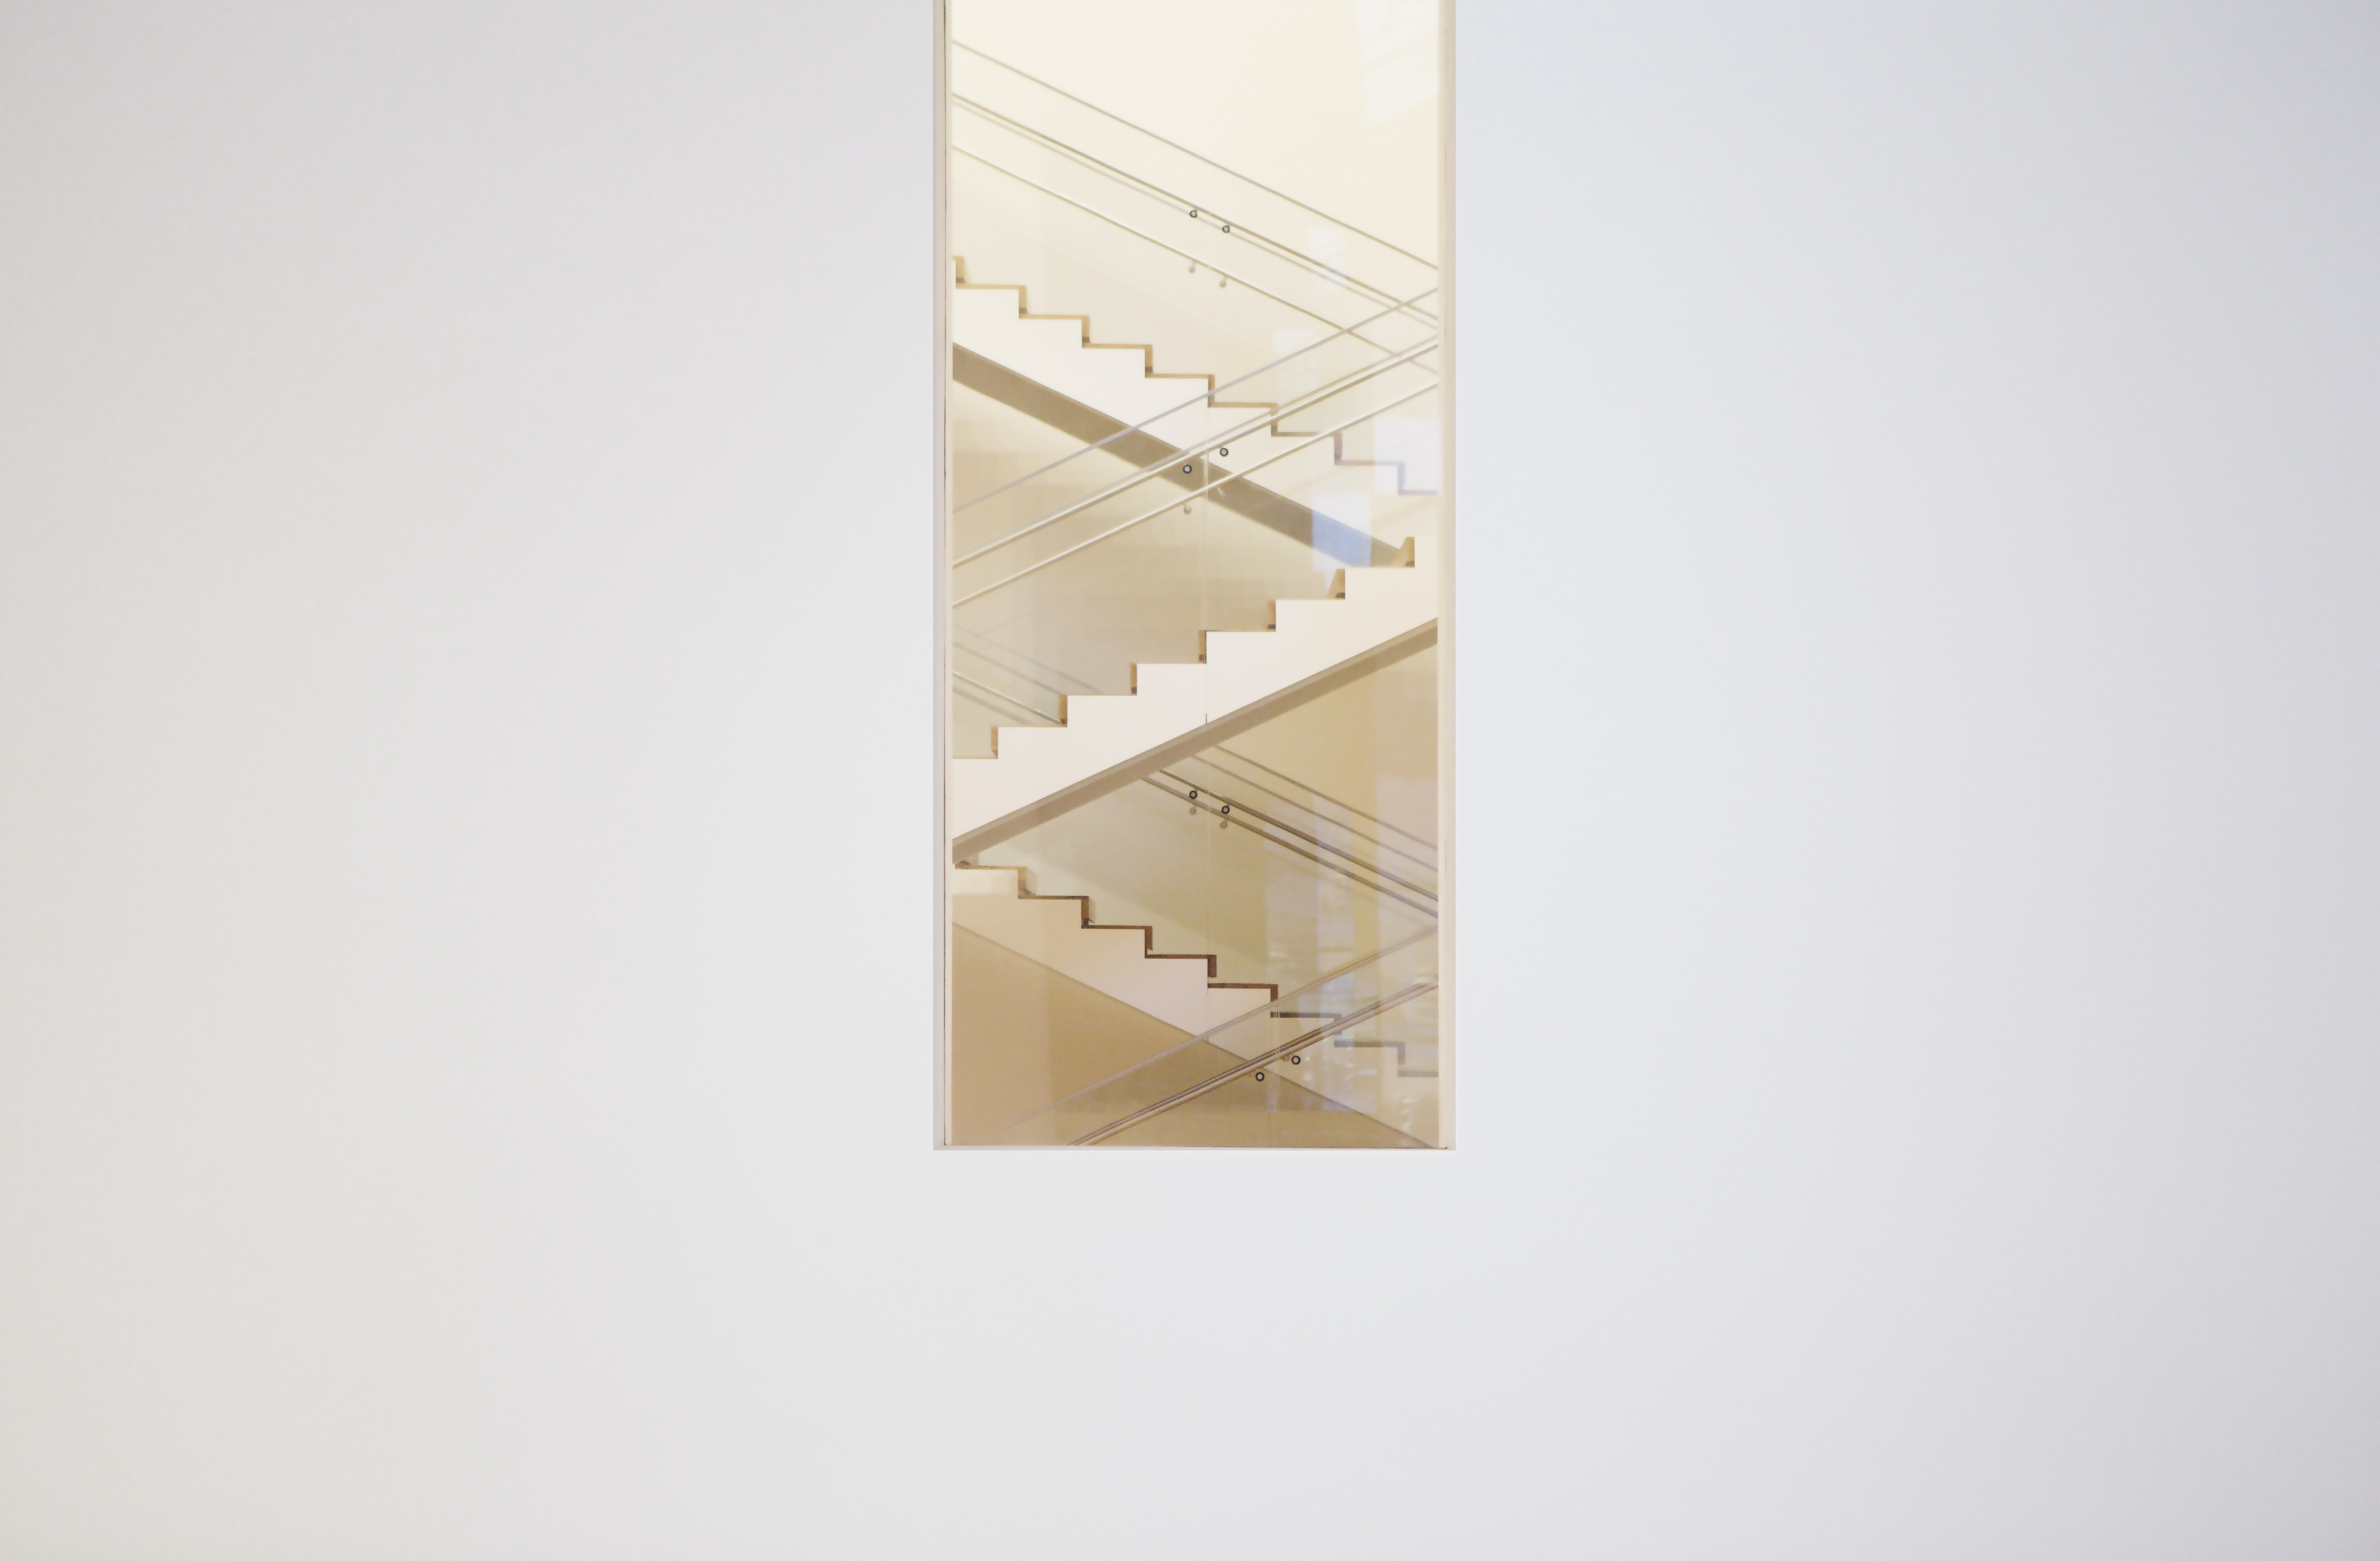 Long shot of zig zag staircase through window in white wall, The Museum of Modern Art